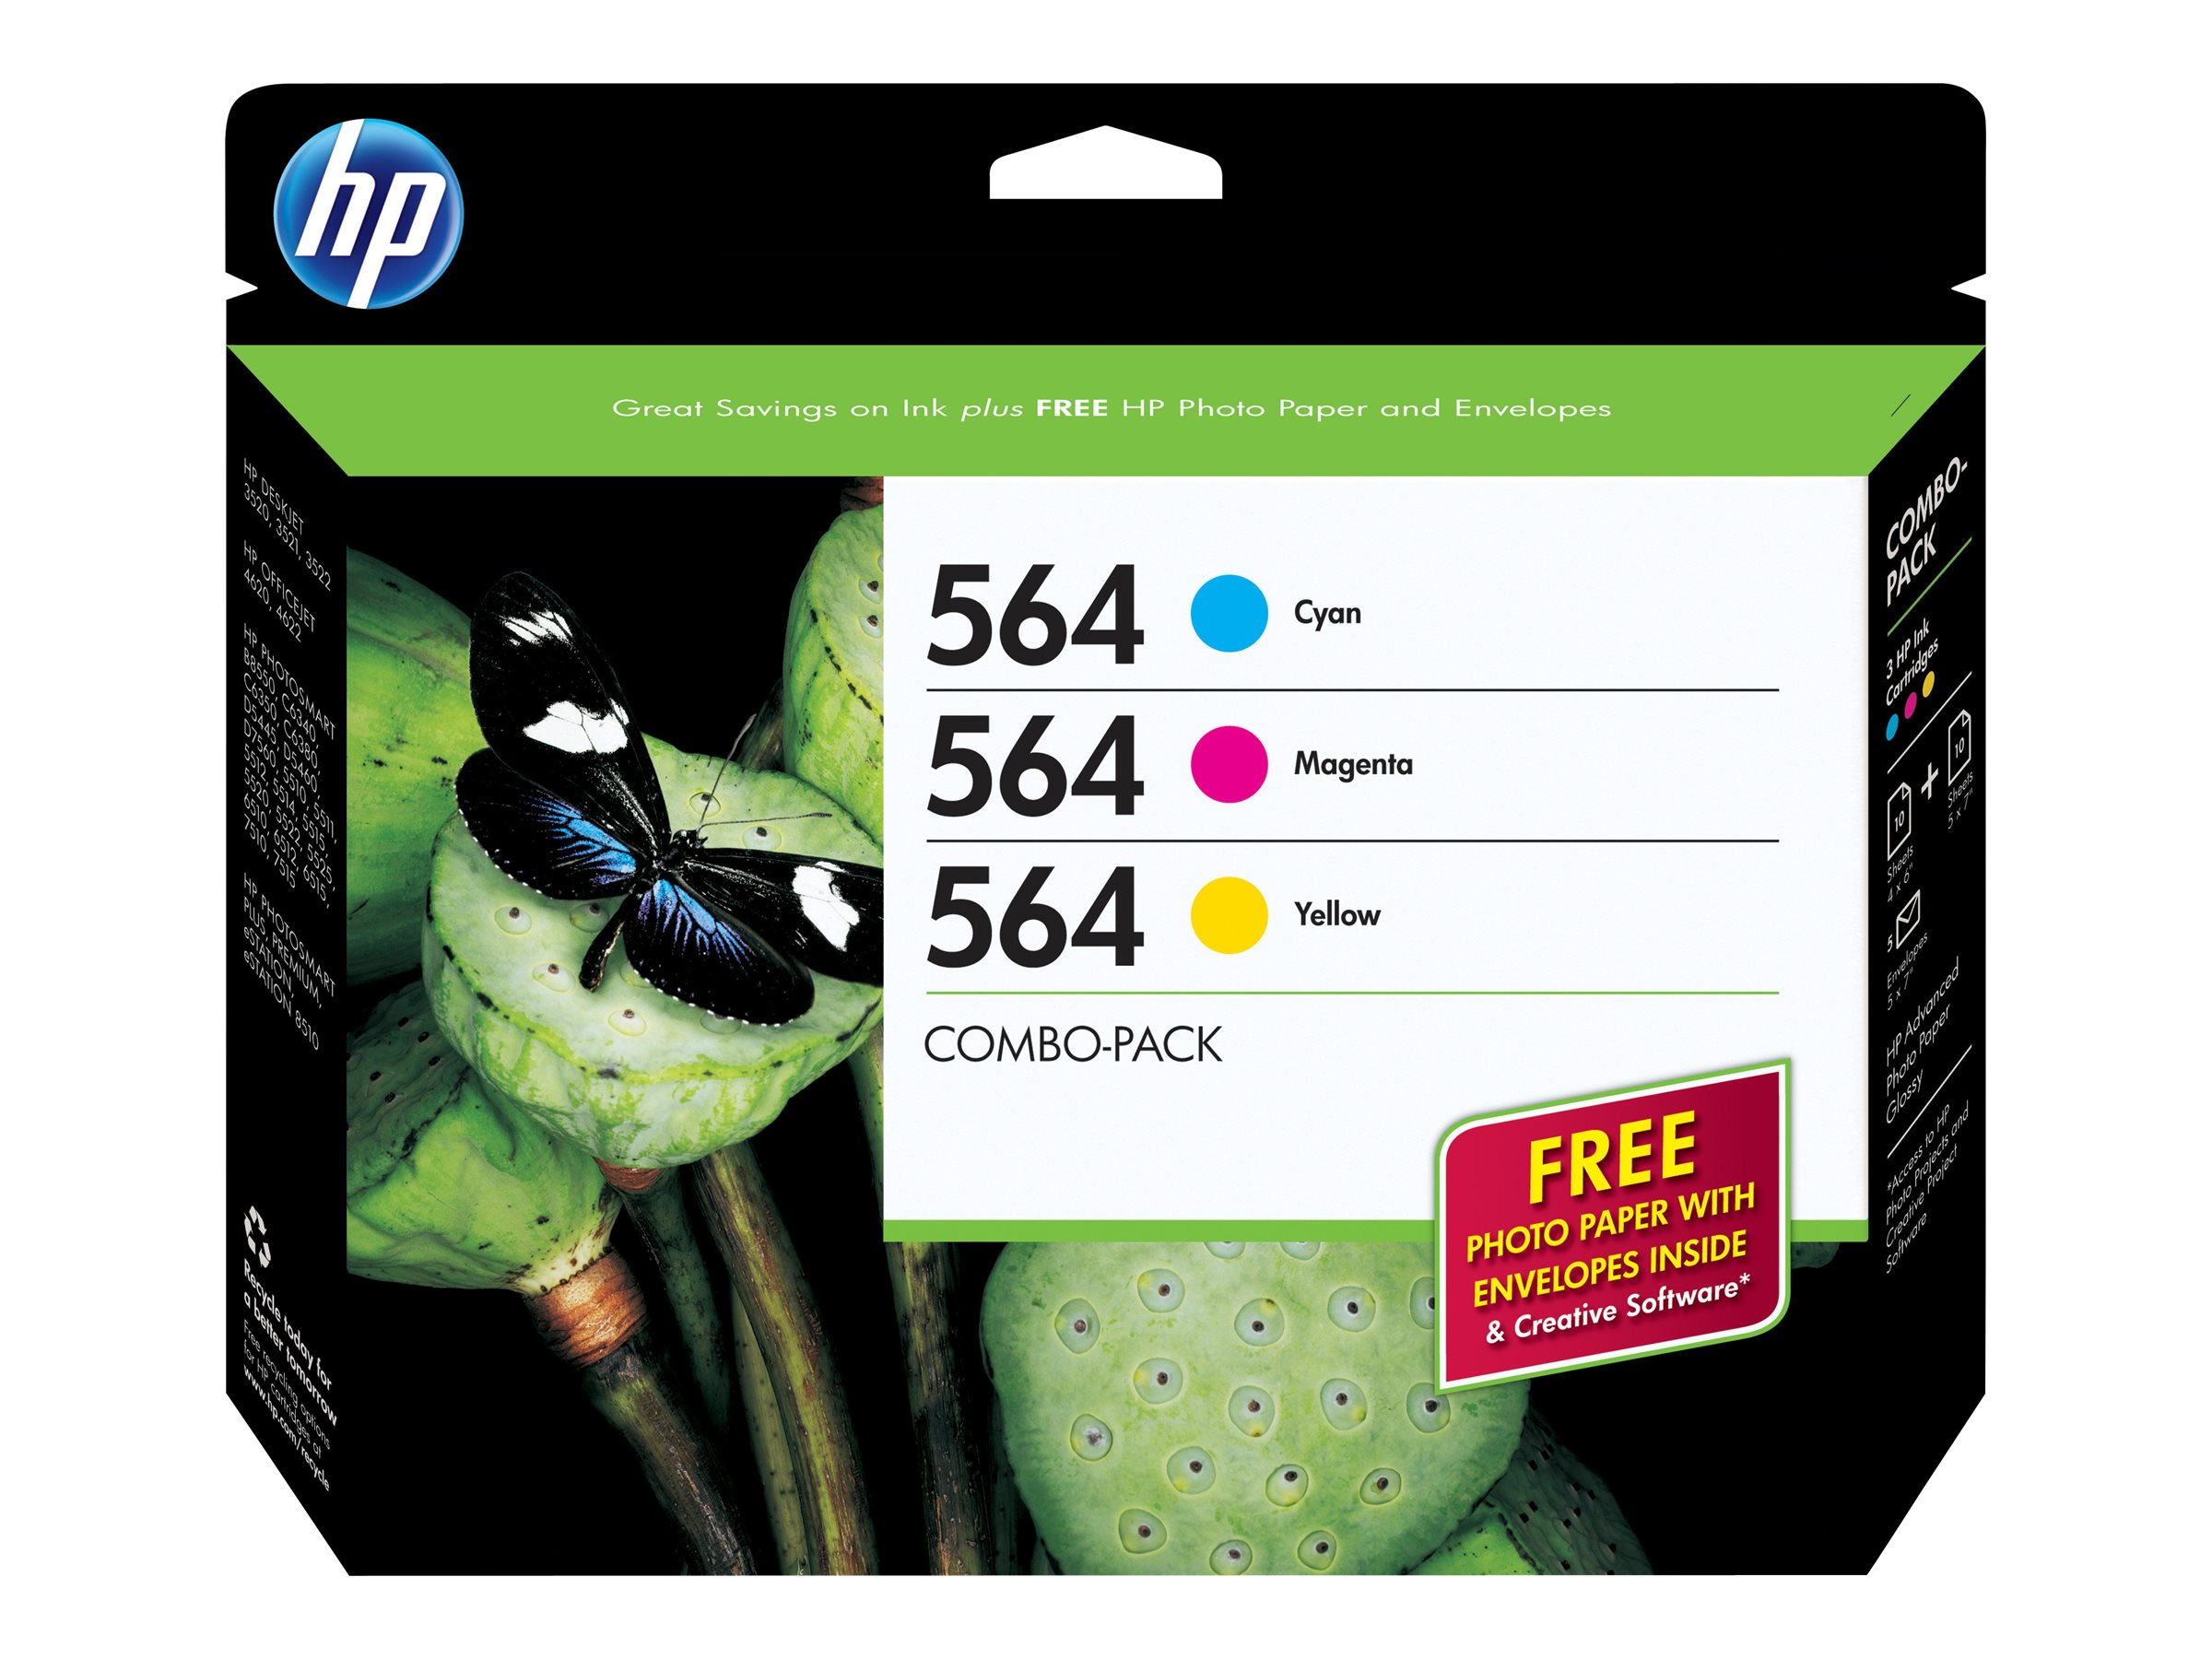 HP Inc. B3B33FN#140 Image 1